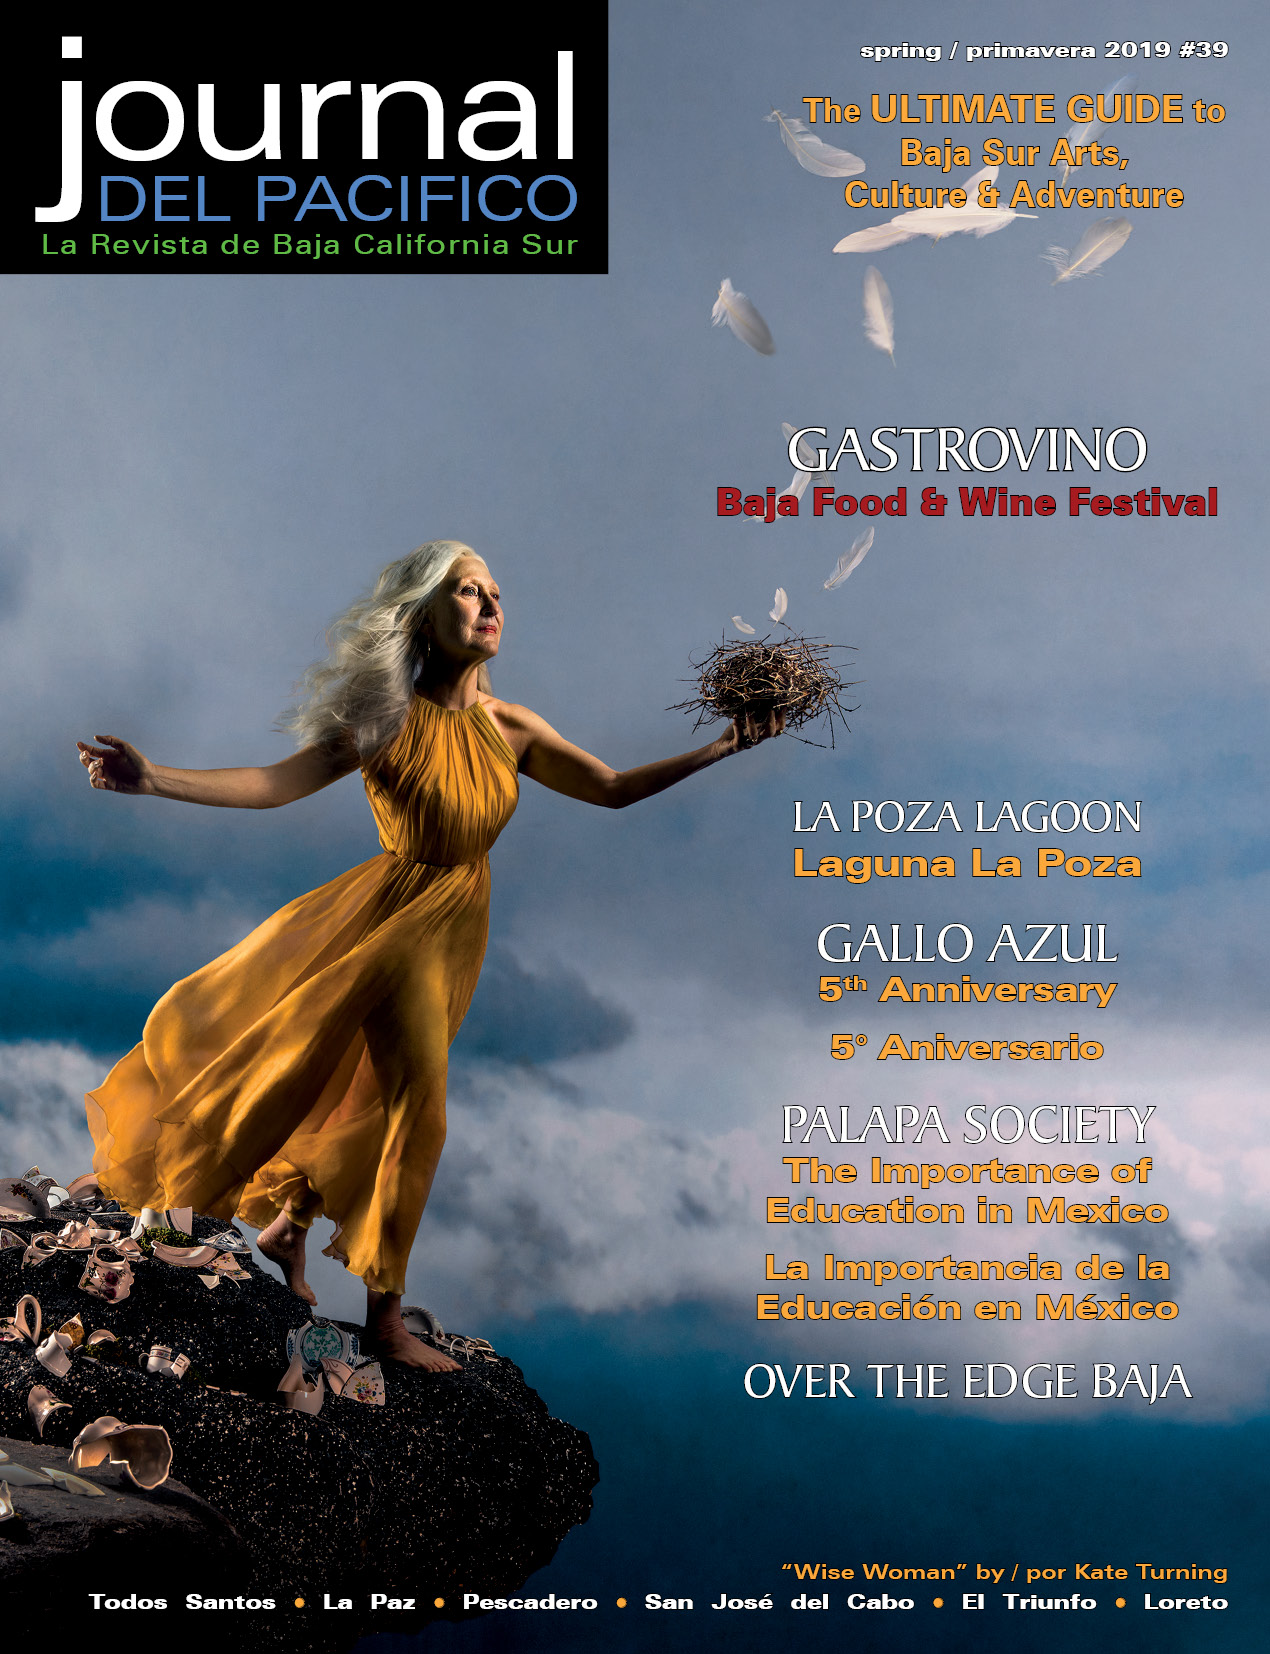 Spring/Primavera 2019 Issue of Journal del Pacifico